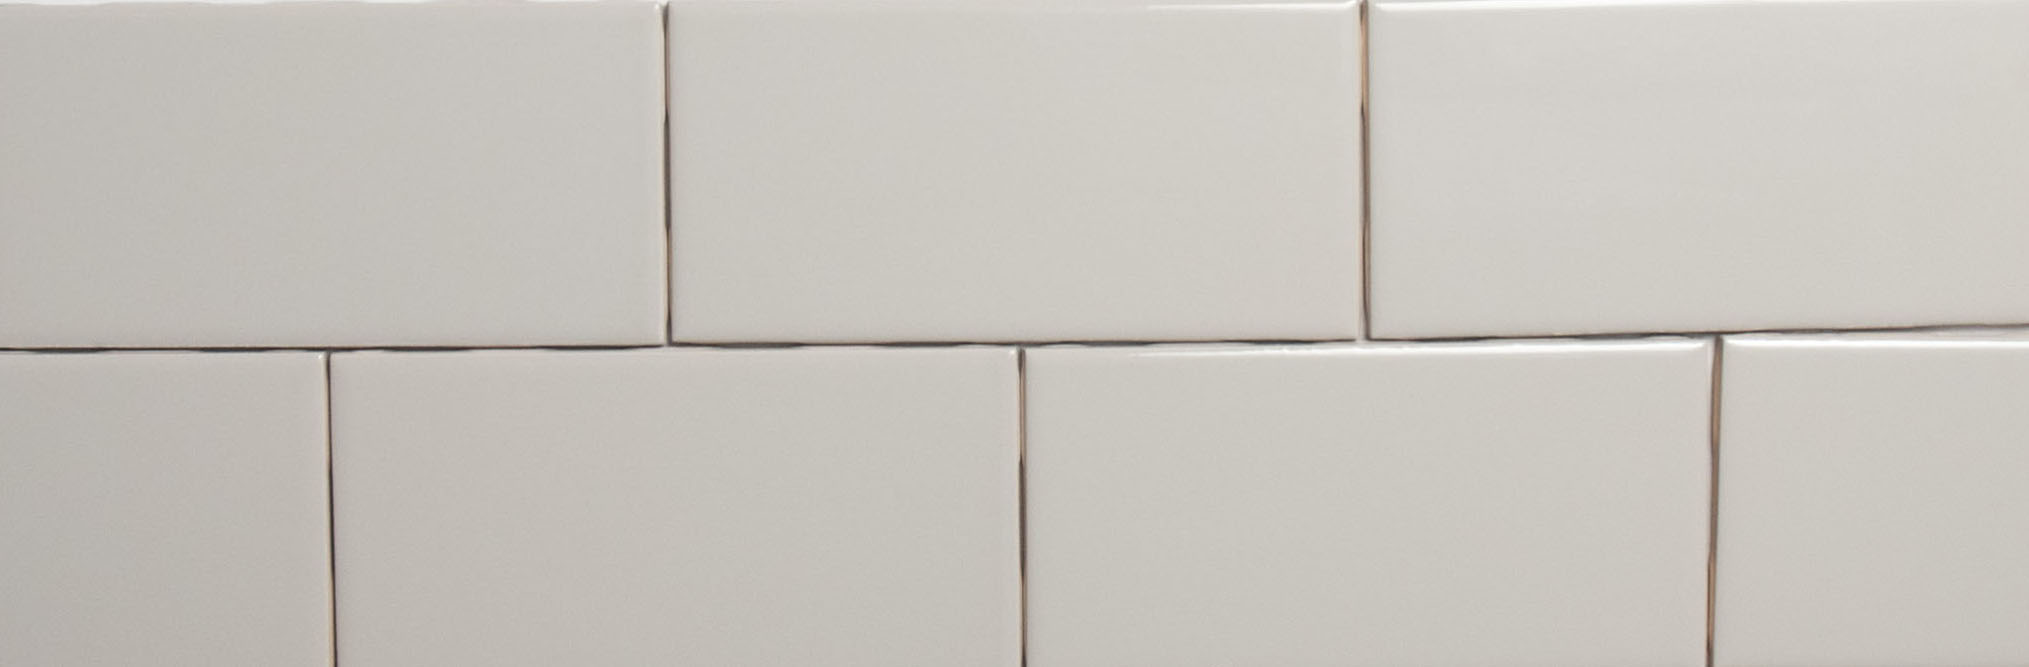 White subway tile shower package nh bath builders tender grey subway 3x6 additional charge also available in biscuit dailygadgetfo Choice Image